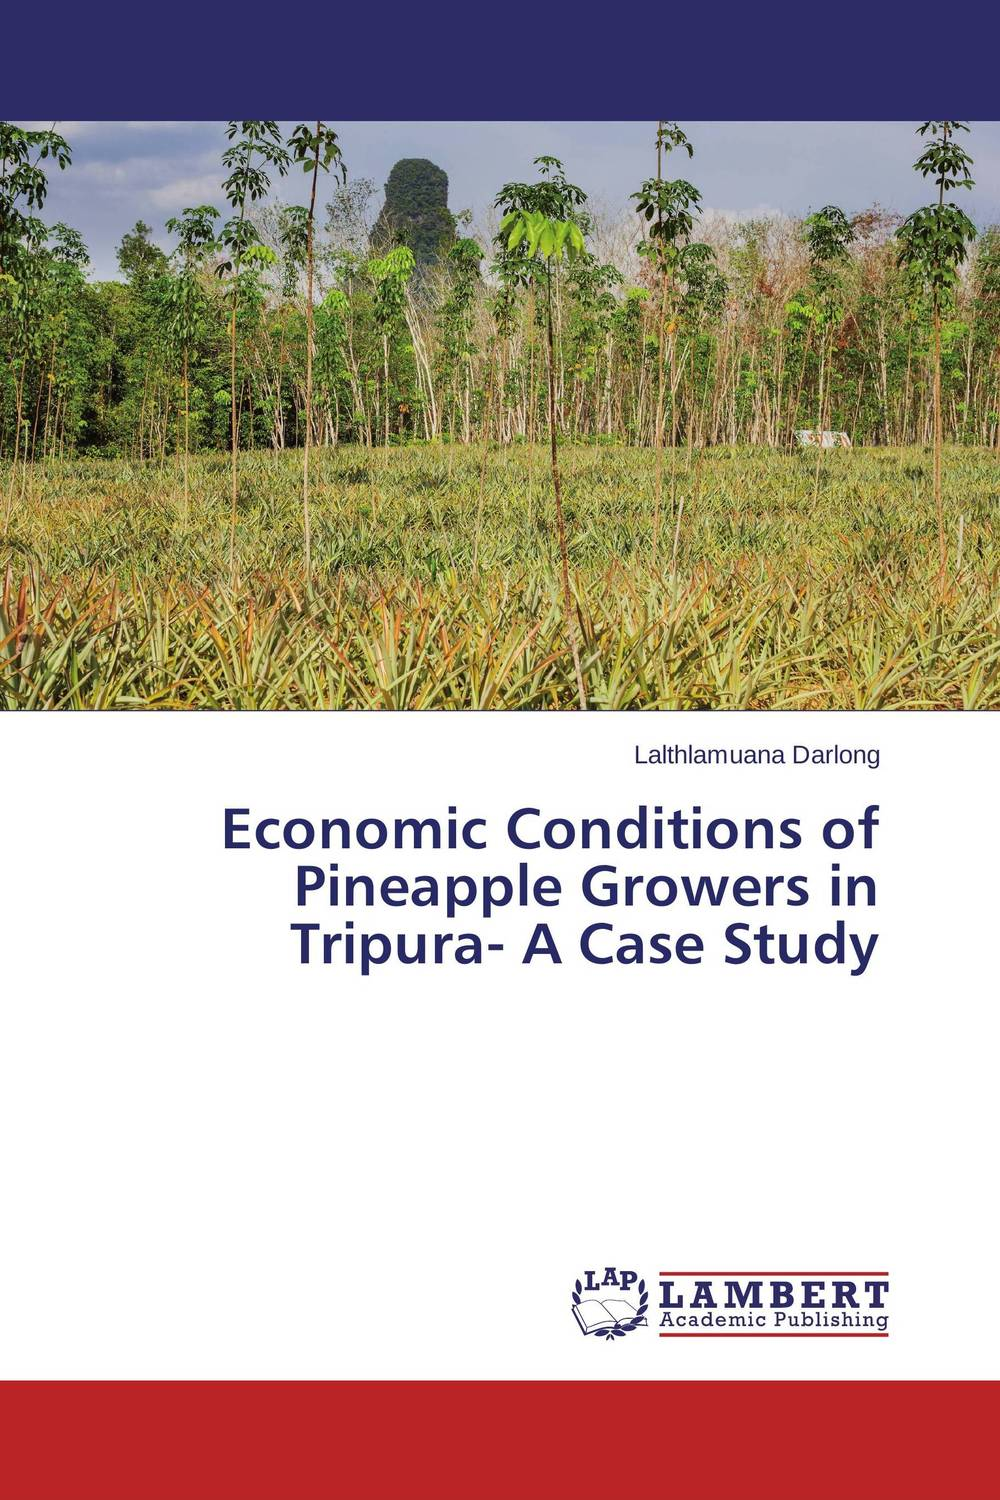 цена на Economic Conditions of Pineapple Growers in Tripura- A Case Study